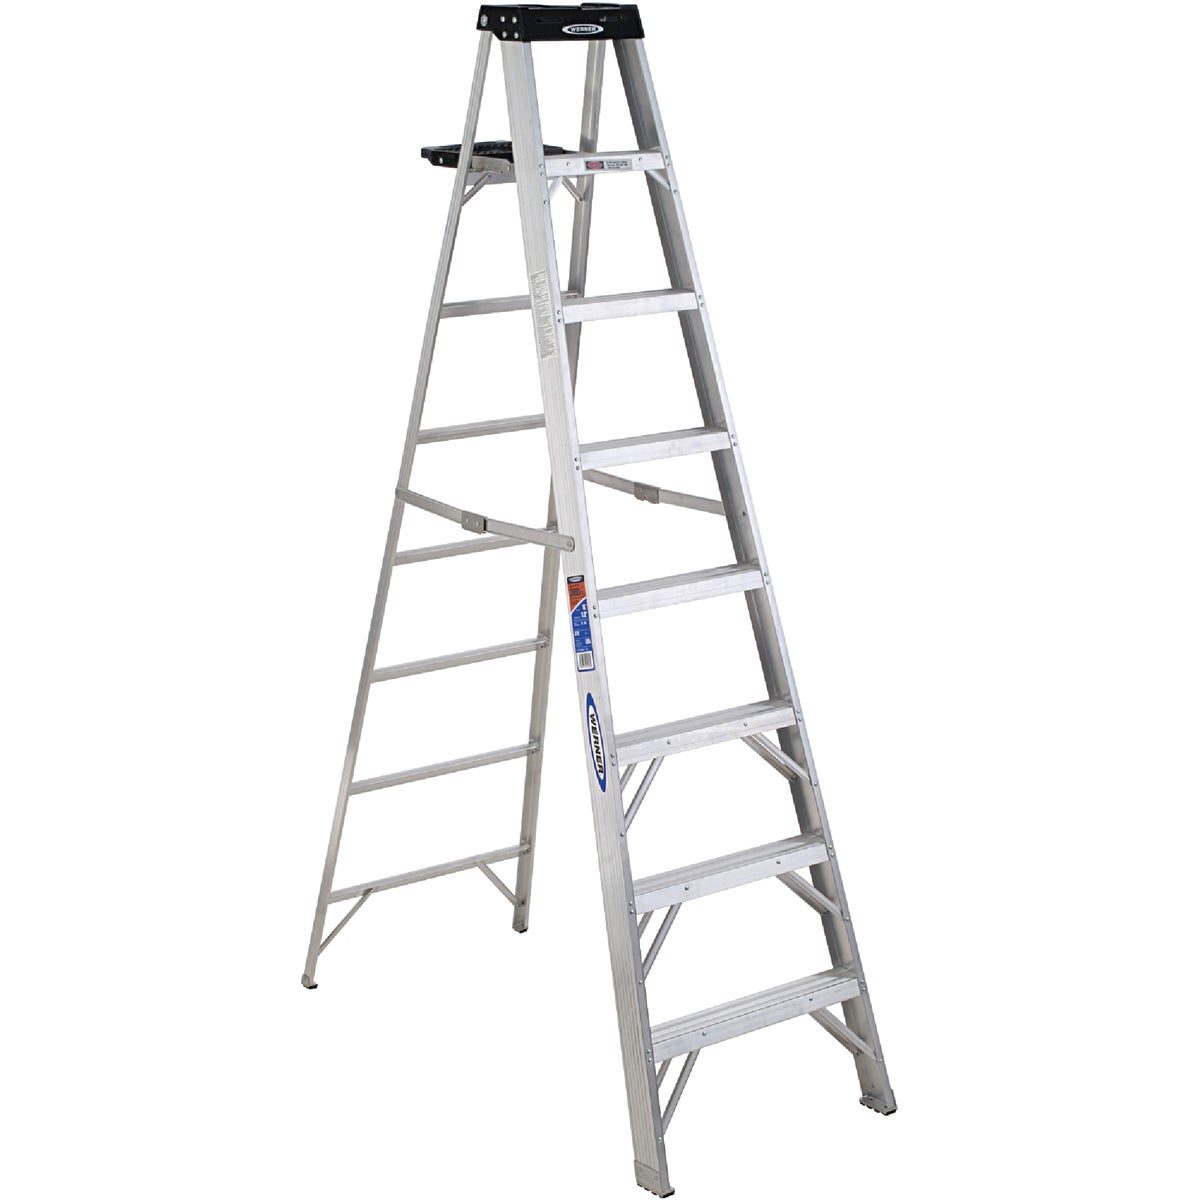 T-1A 8' ALUM STEPLADDER - 378 by Werner Ladder